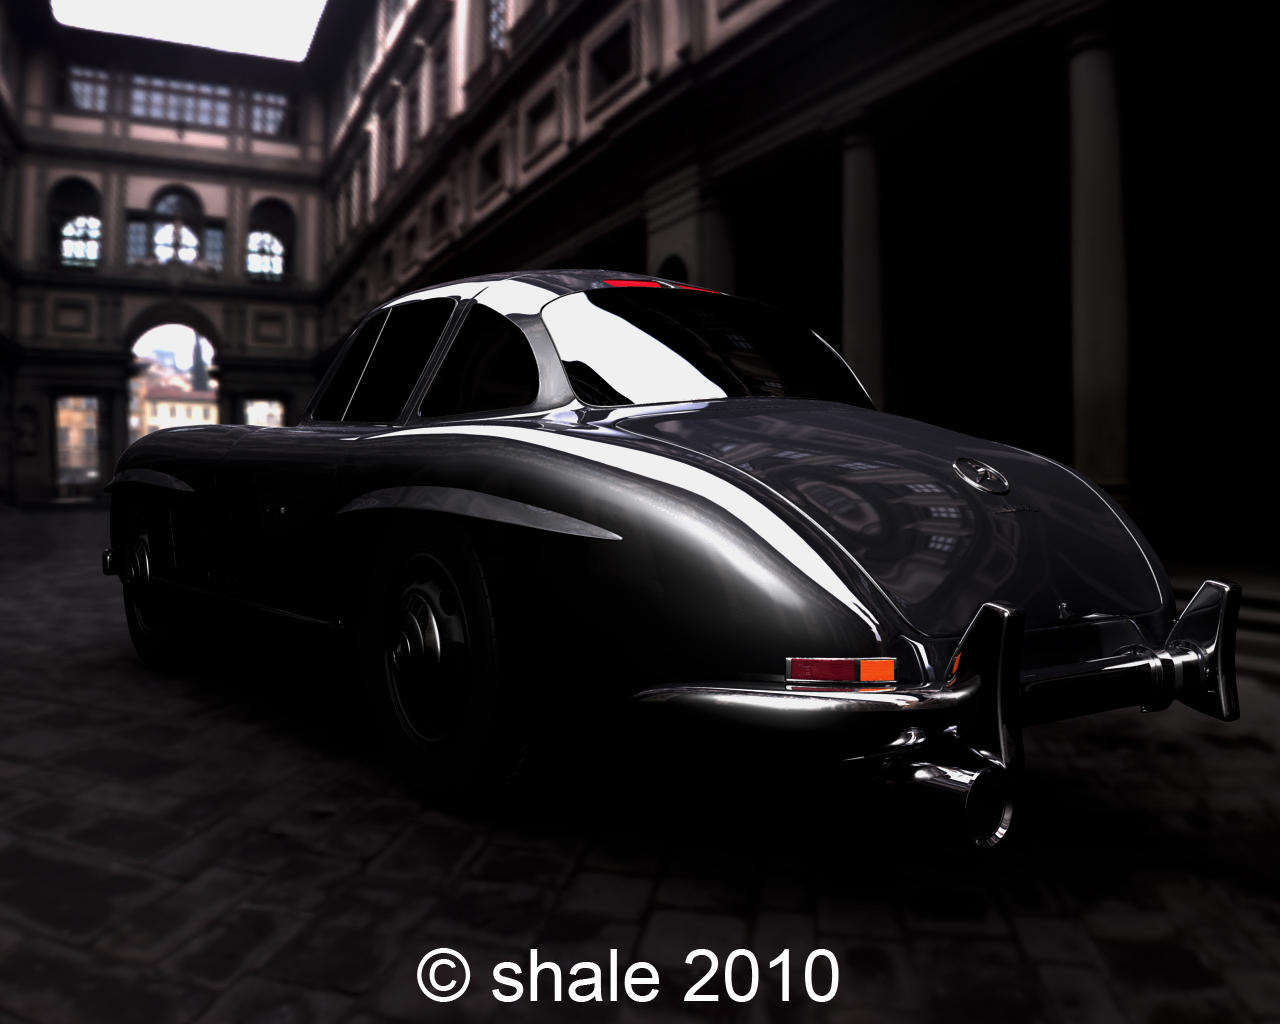 300sl 254 wallpaper - photo #48